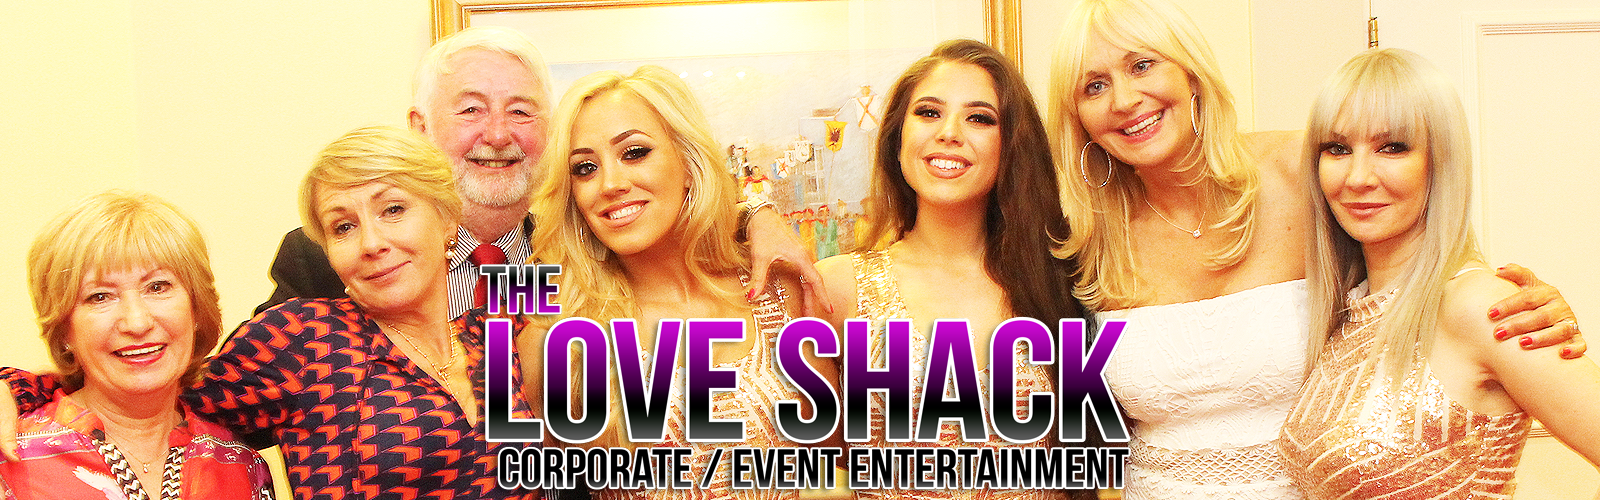 love-shack-corporate entertainment